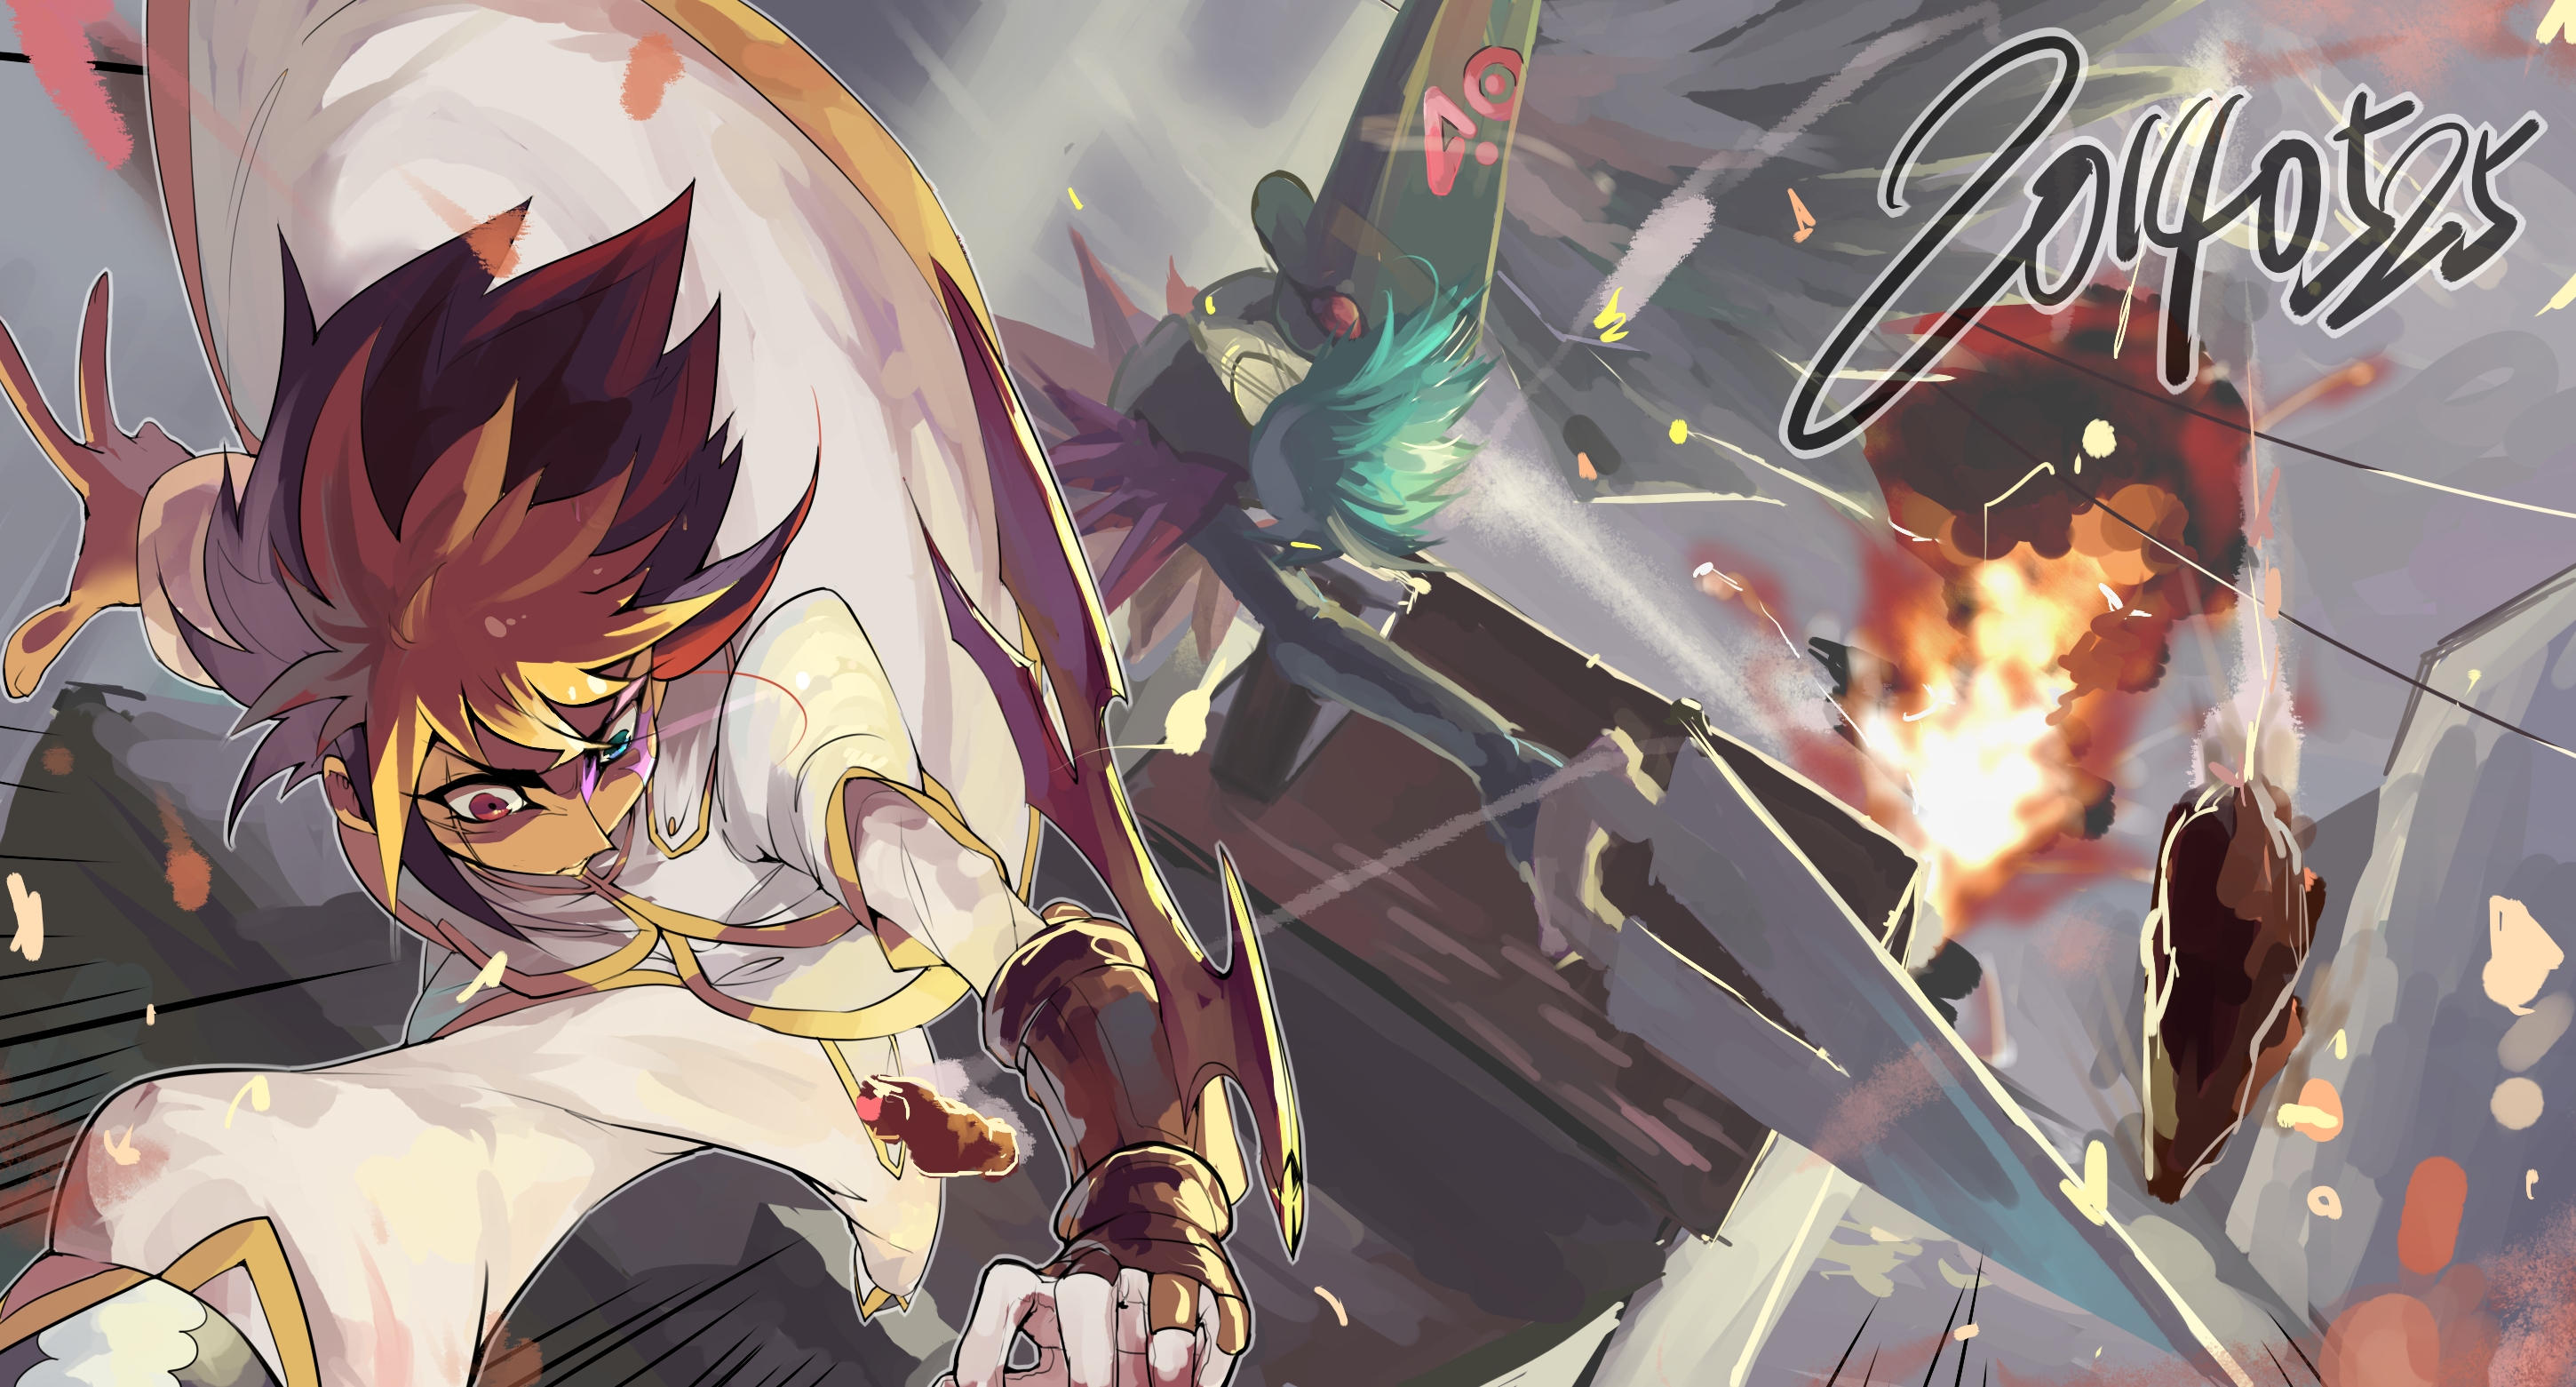 Yu-Gi-Oh! Zexal Wallpapers, Pictures, Images